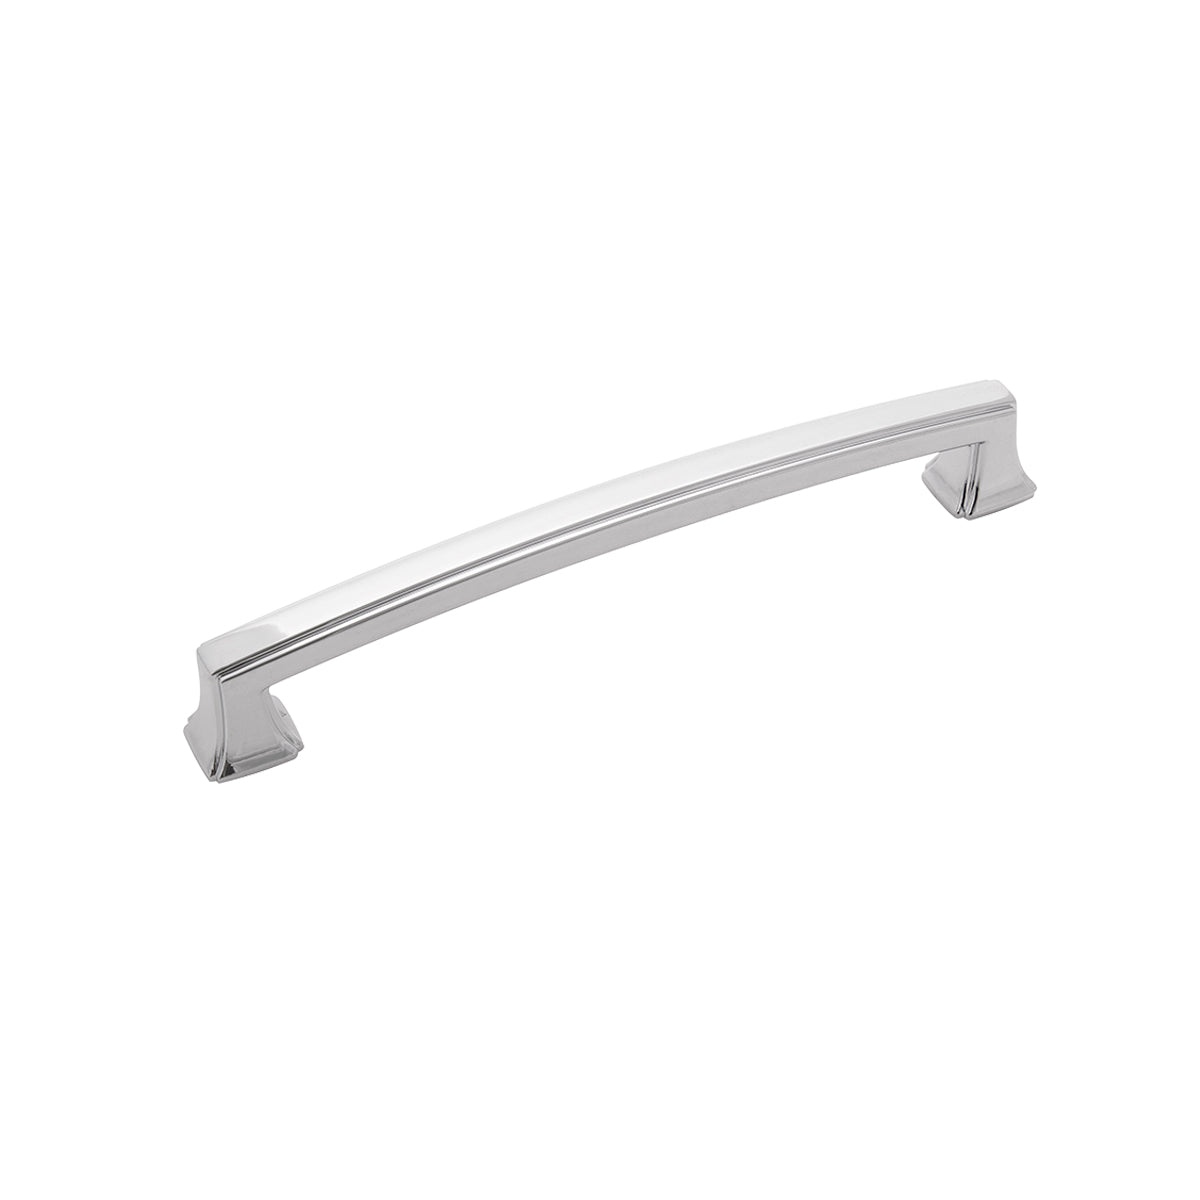 160mm Bridges Cabinet Pull